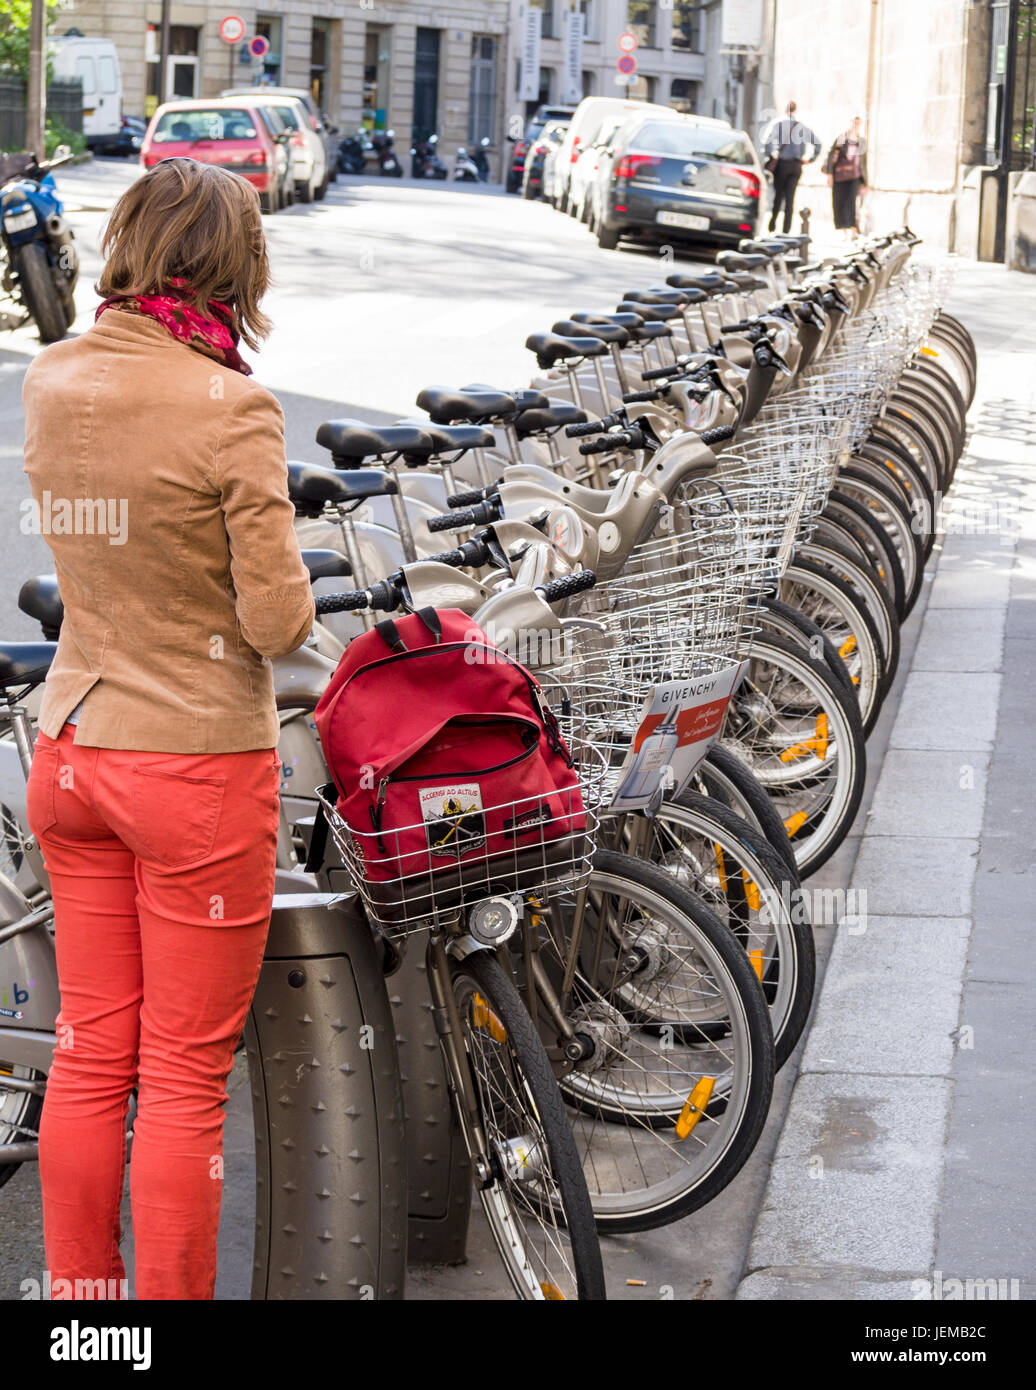 Worman returning a Shared bike in Paris: A young woman returns a Paris sharing bicycle to a long rack of bikes on - Stock Image